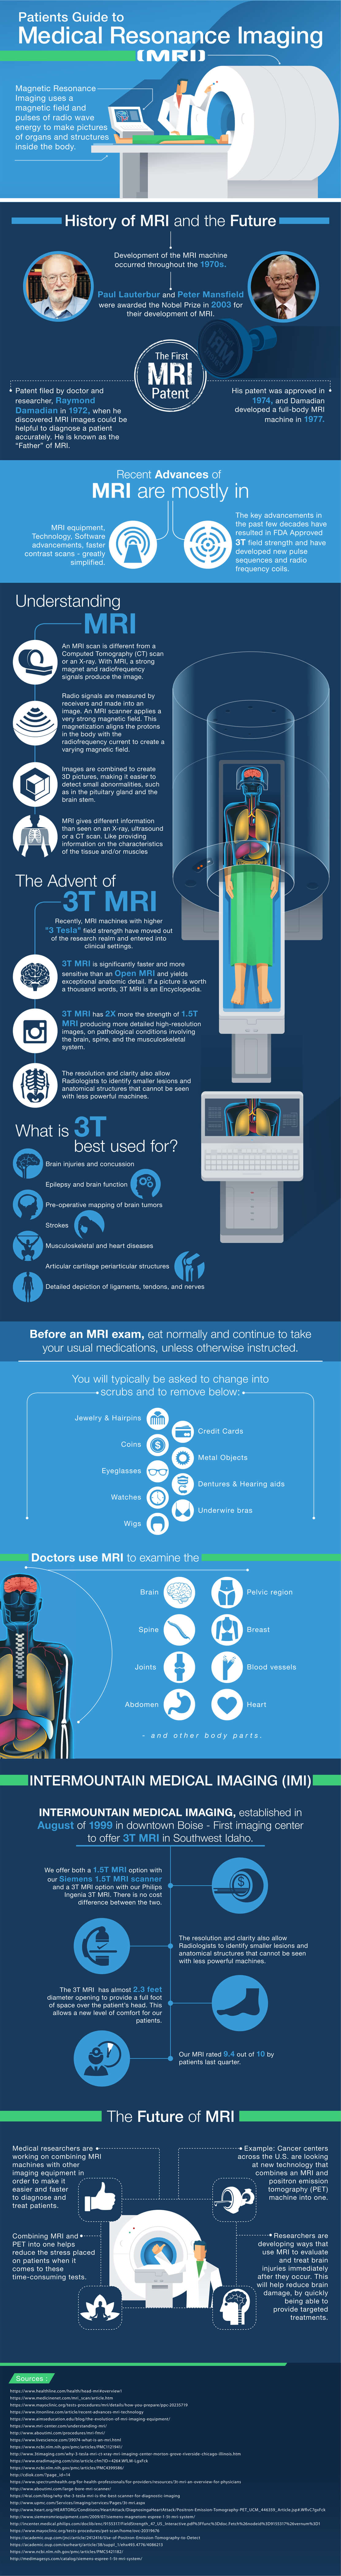 IMI_Patients-Guide-to-Medical_IGDT-infographic